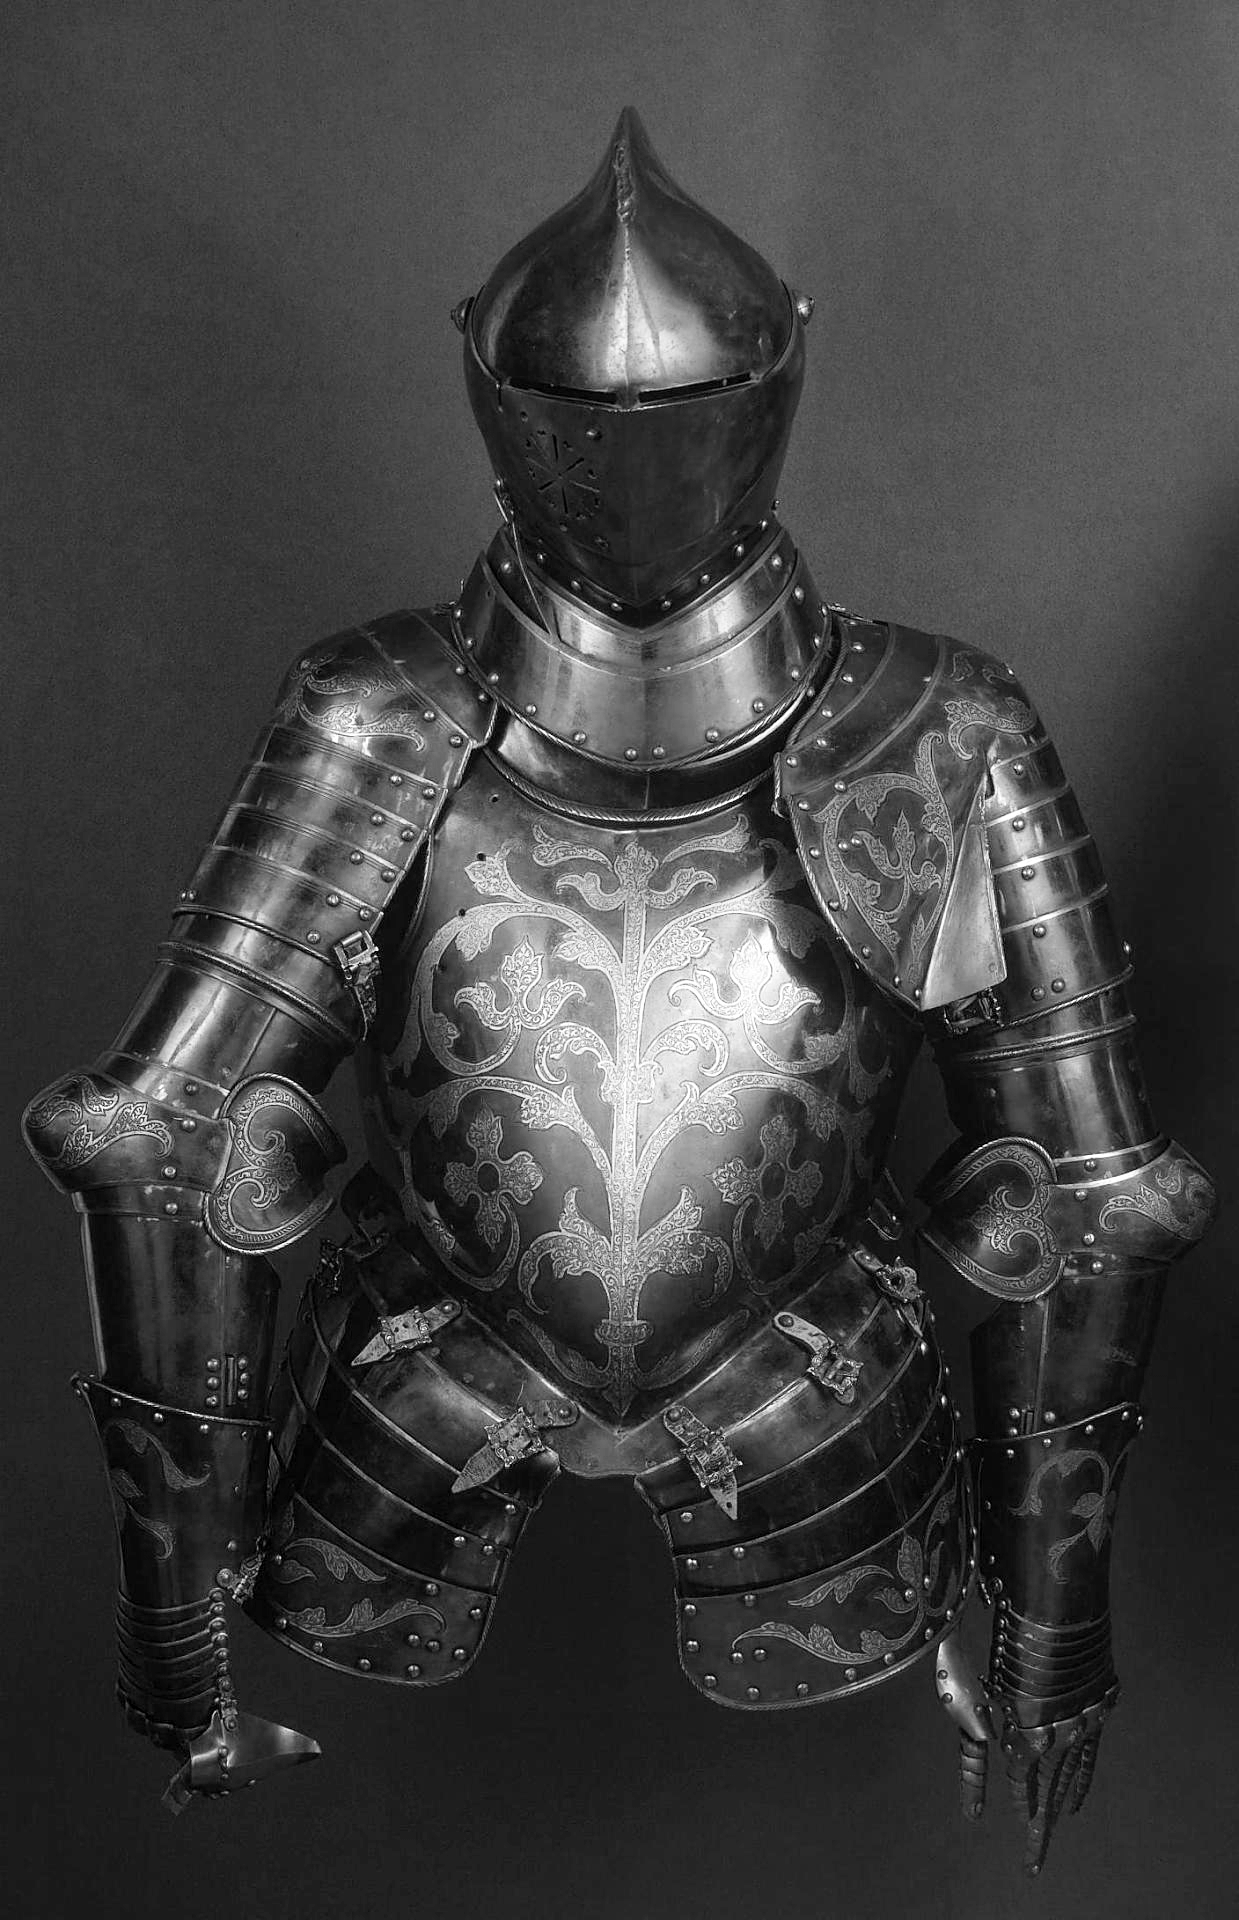 Armour, Place of creation: Germany Date: First third of the 16th century School: Augsburg (?) Material: steel and leather Technique: forged and chased.